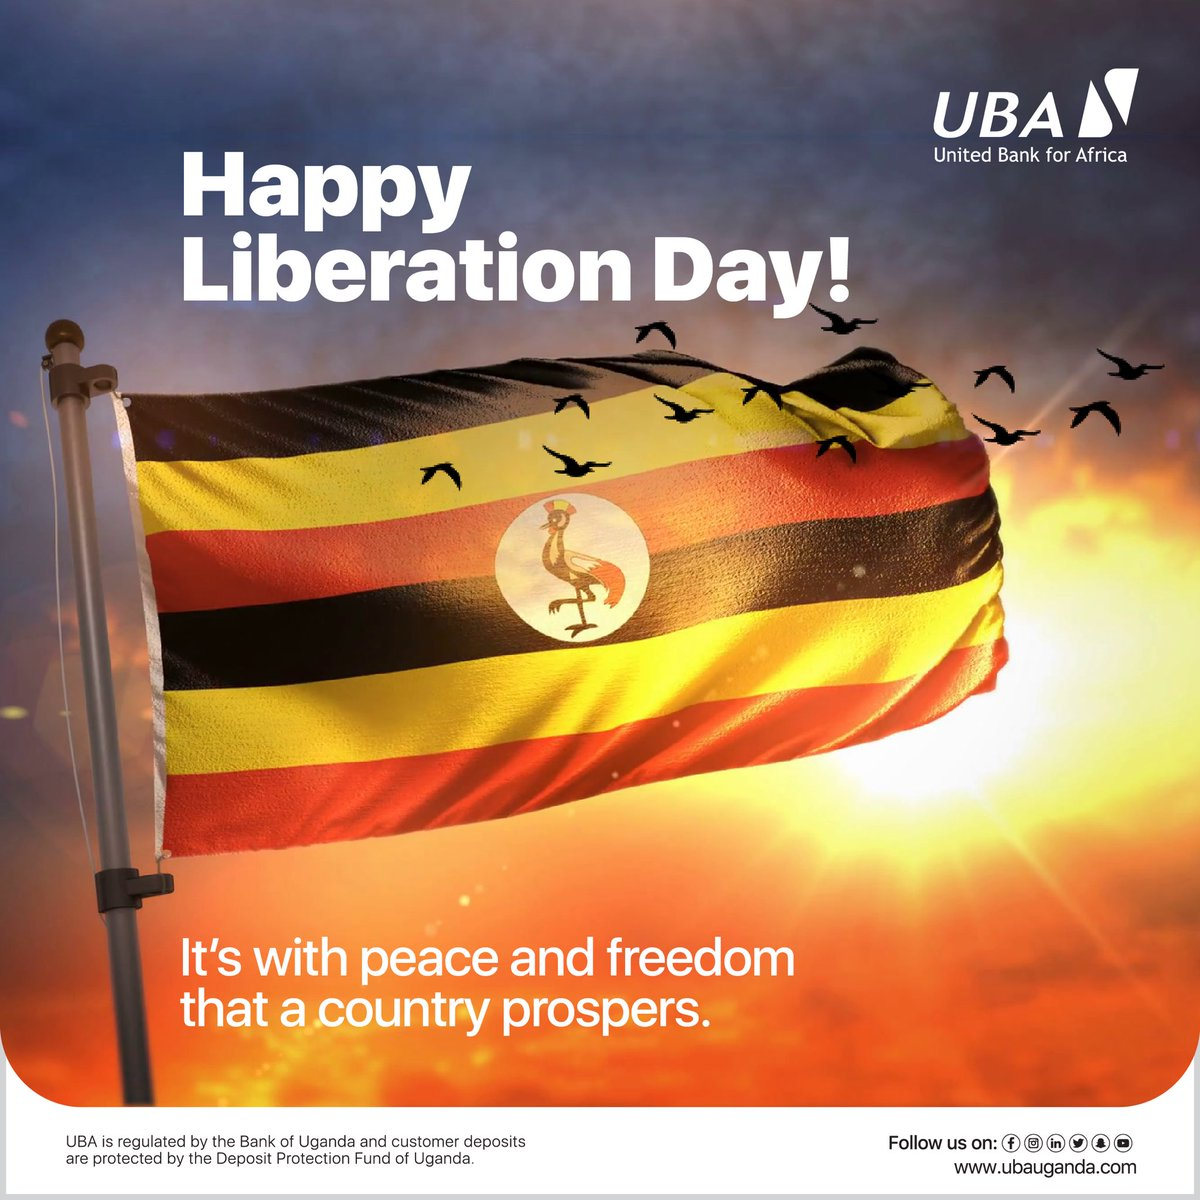 It's with peace and freedom that a country prospers. Happy Liberation Day from all of us at UBA Uganda.  #LiberationDayUganda #HappyLiberationUganda #NRMDay #AfricasGlobalBank